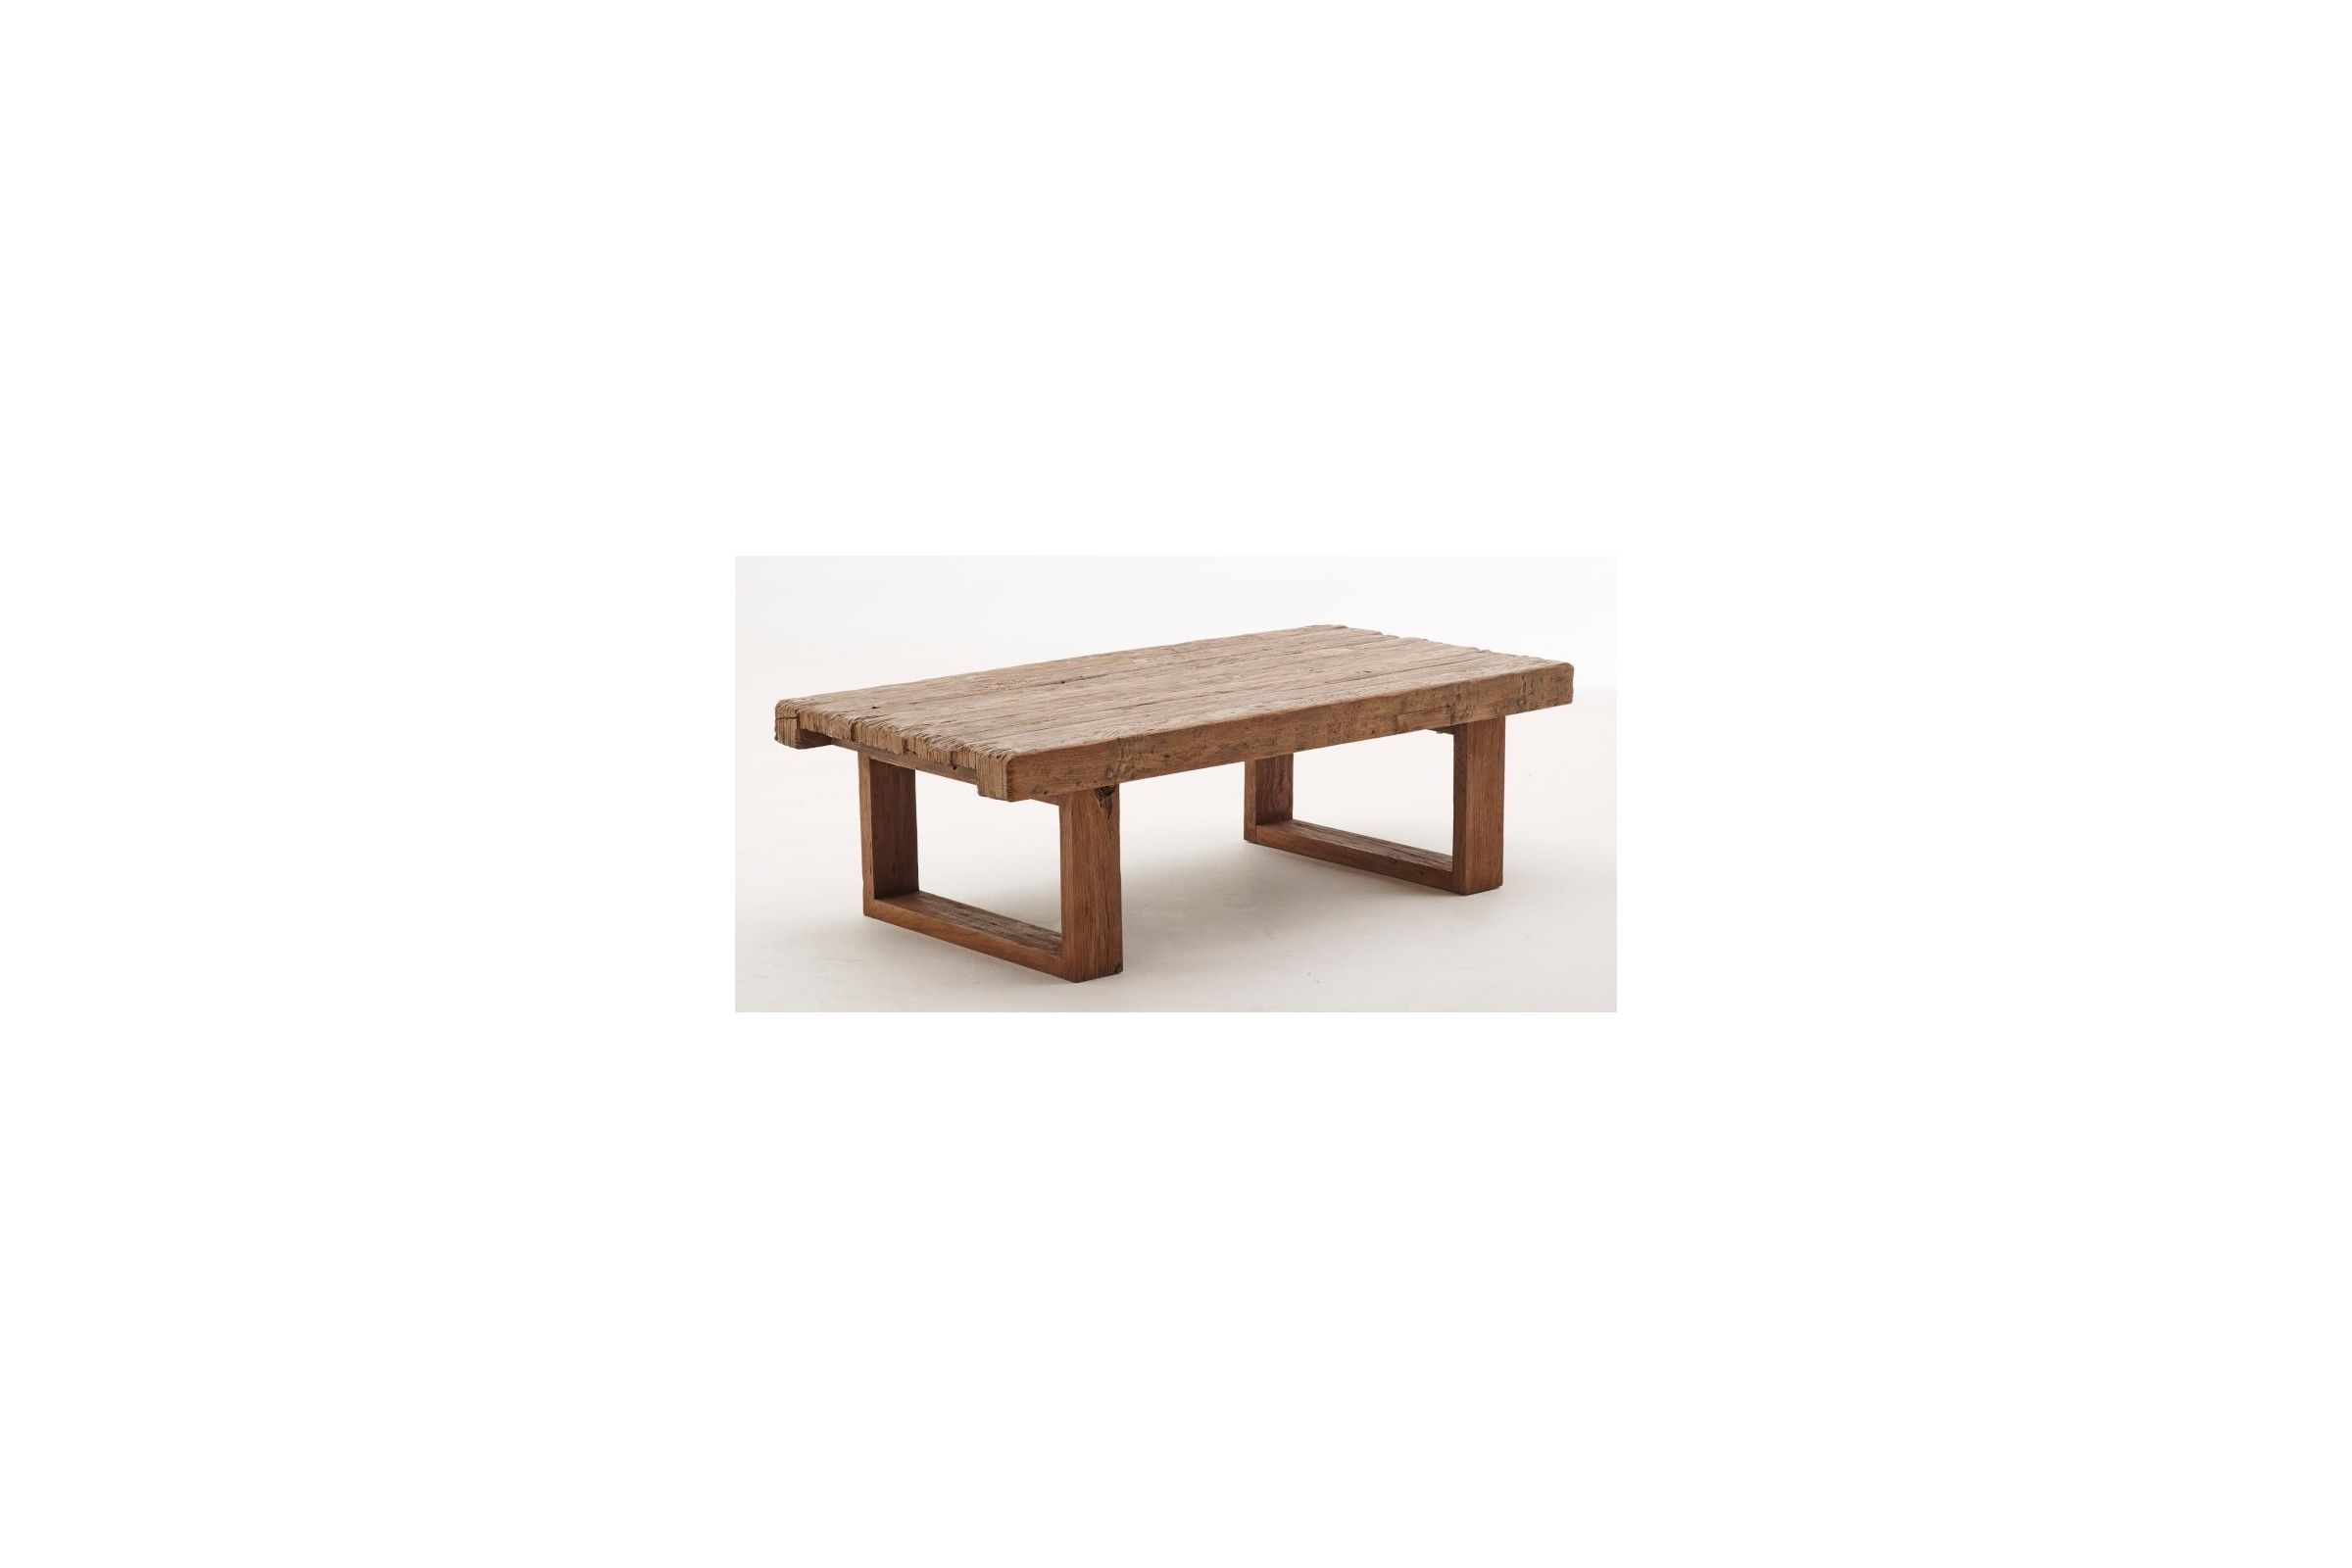 Table basse en teck ancien 130 cm la galerie du teck - Table basse de salon en bois ...